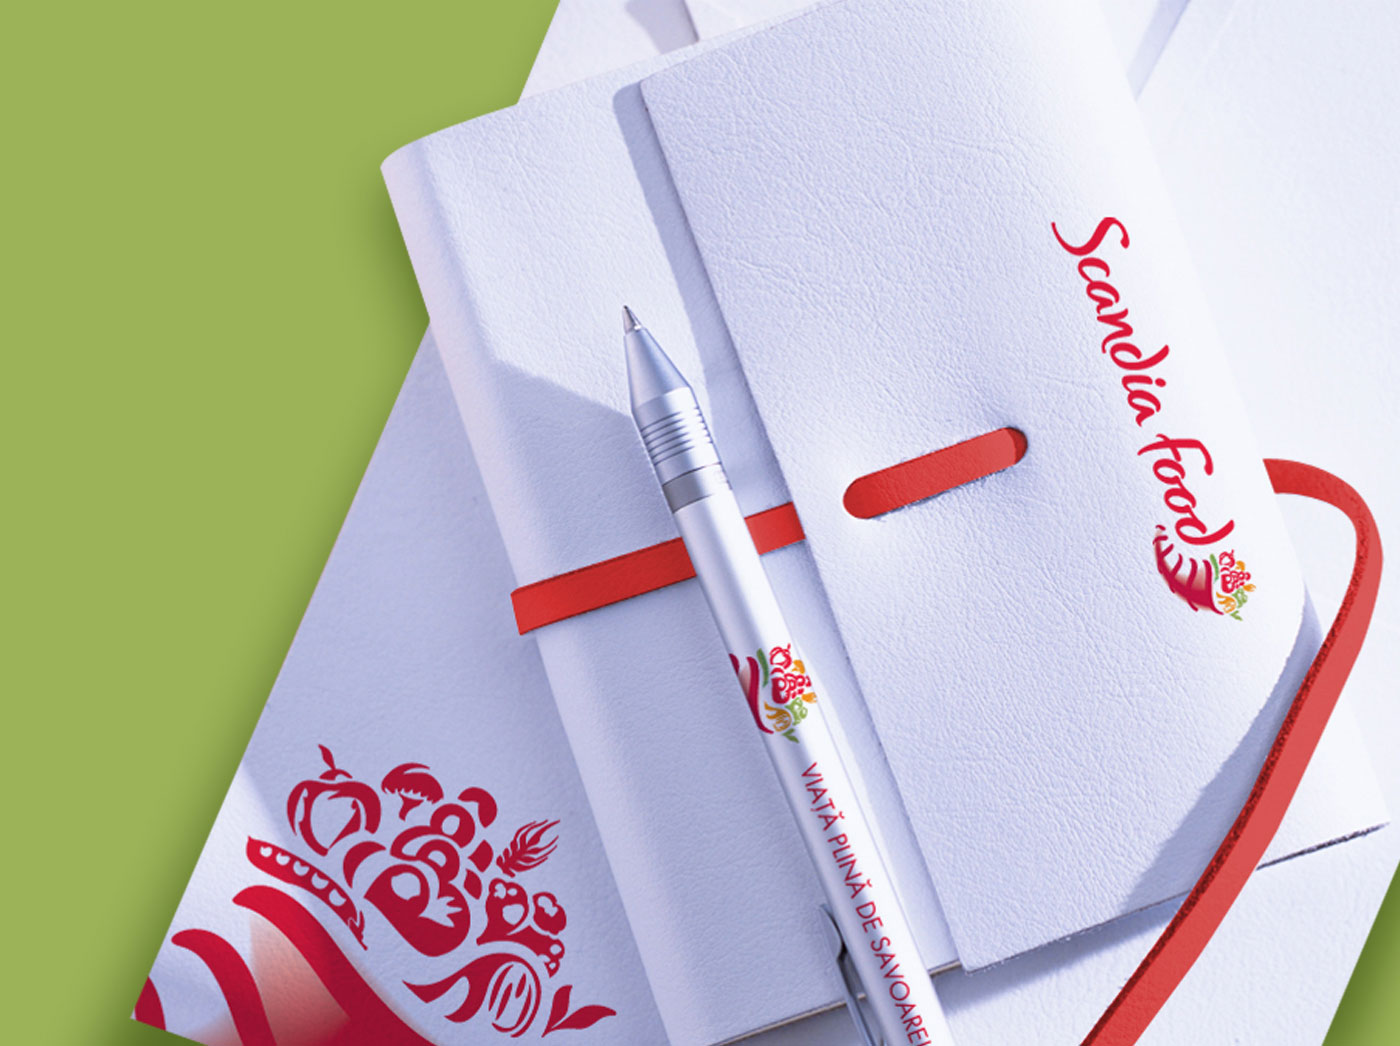 scandia food rebranding stationary inoveo